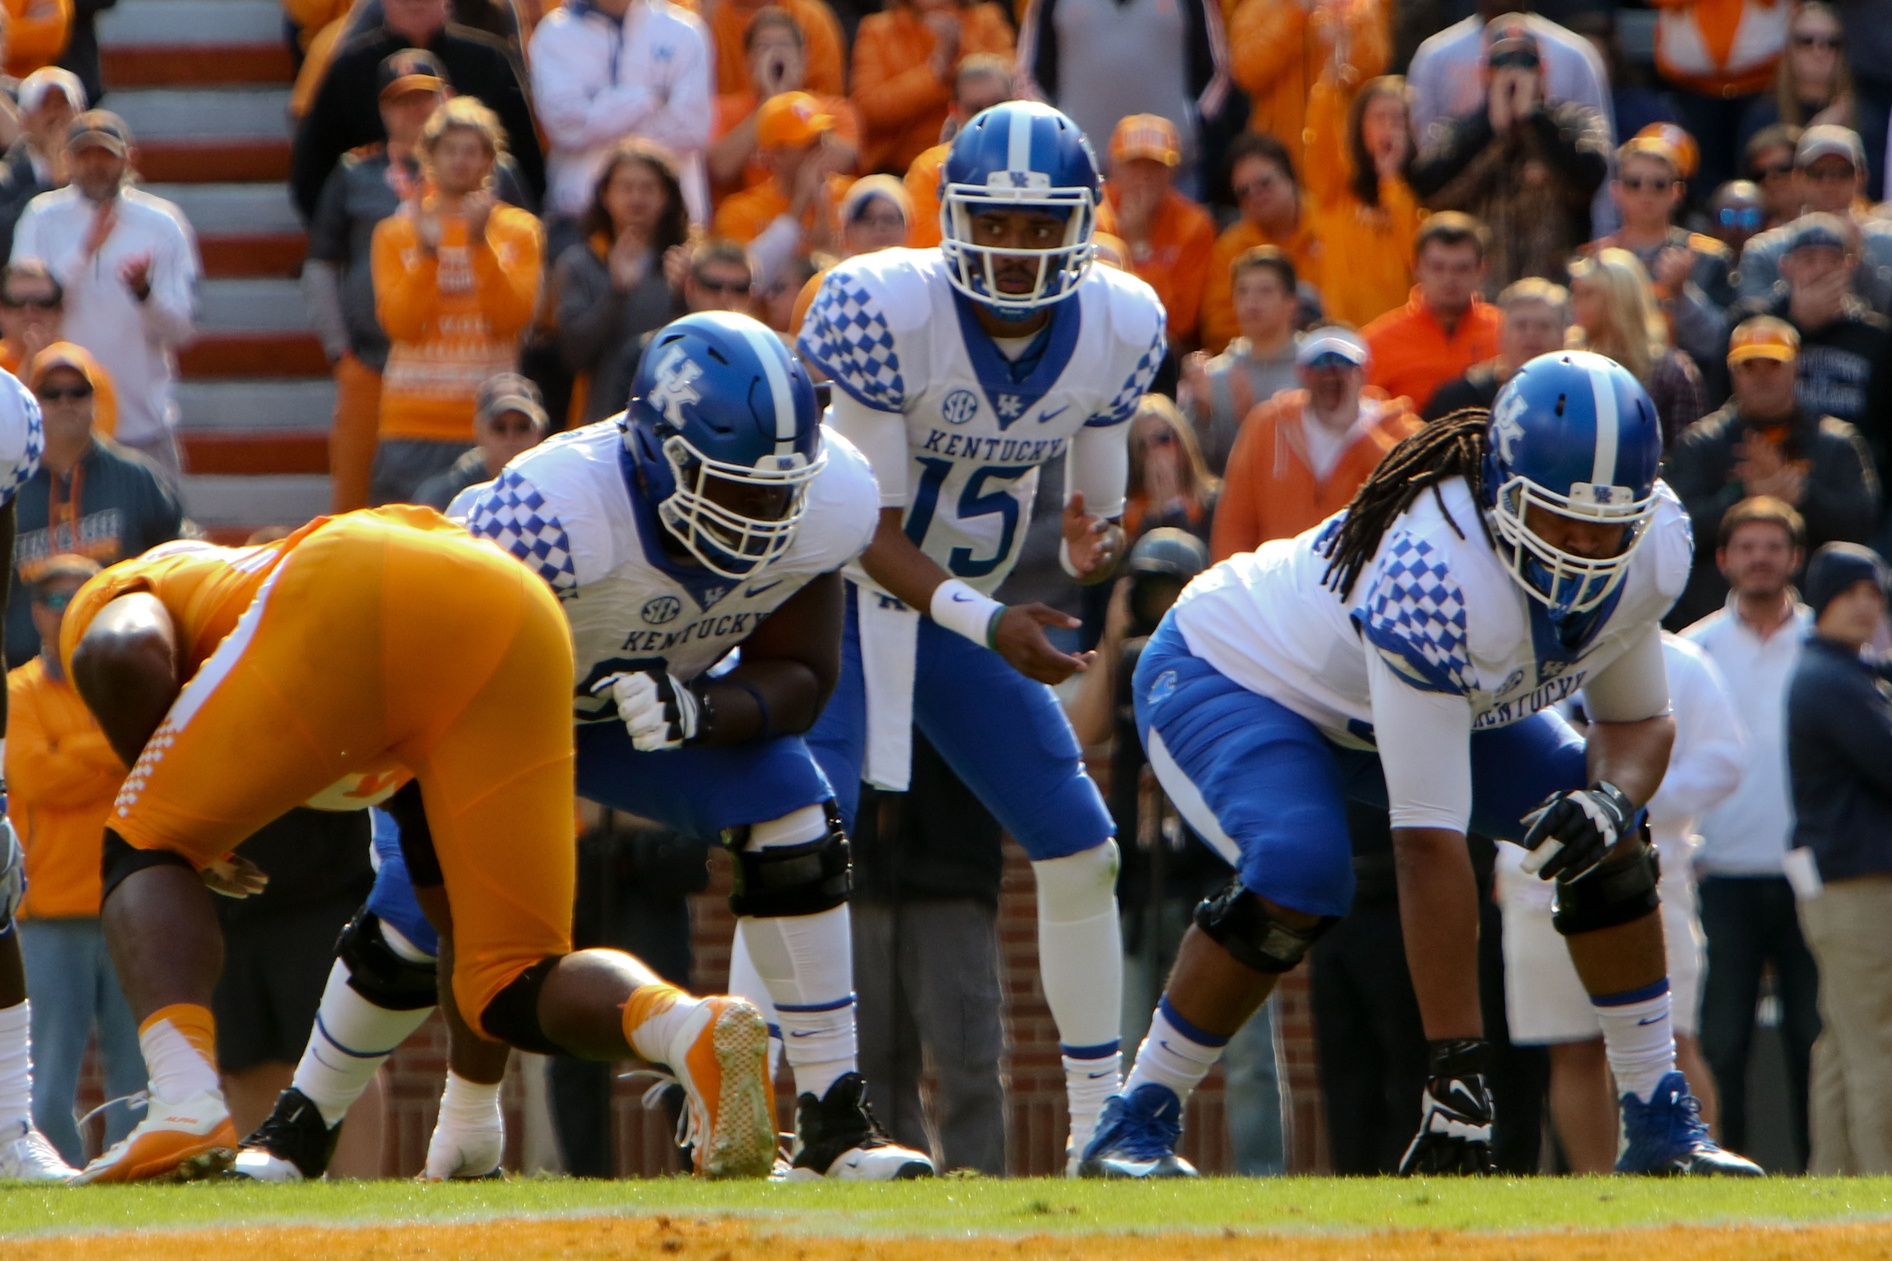 Nov 12, 2016; Knoxville, TN, USA; Kentucky Wildcats quarterback Stephen  Johnson (15) during the first half against the Tennessee Volunteers at Neyland Stadium. Mandatory Credit: Randy Sartin-USA TODAY Sports